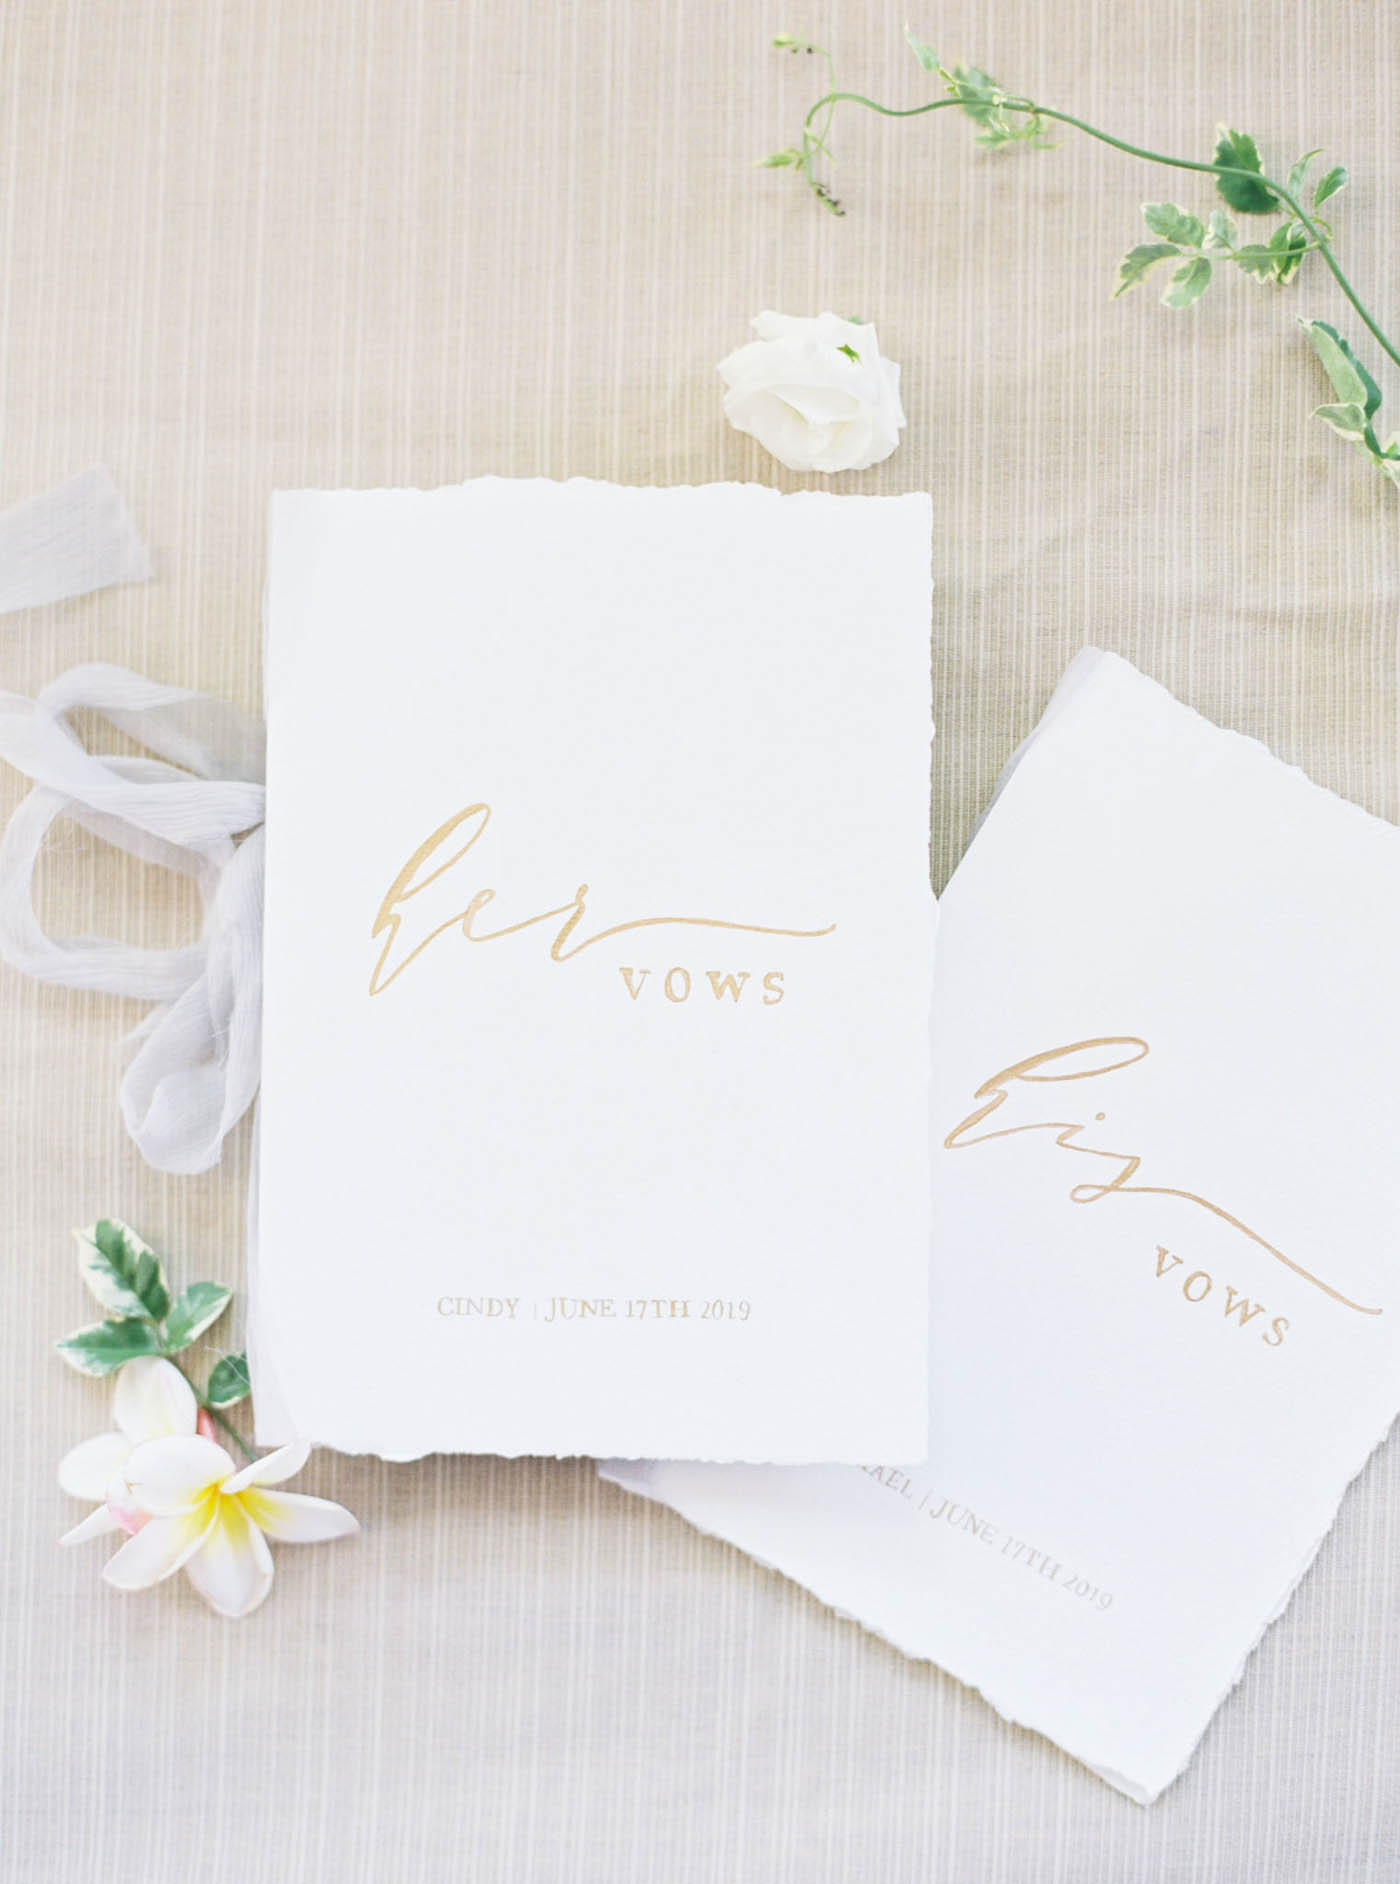 Royal Santrian Villa fine art wedding 峇里島婚禮 Sweetbella Decoration